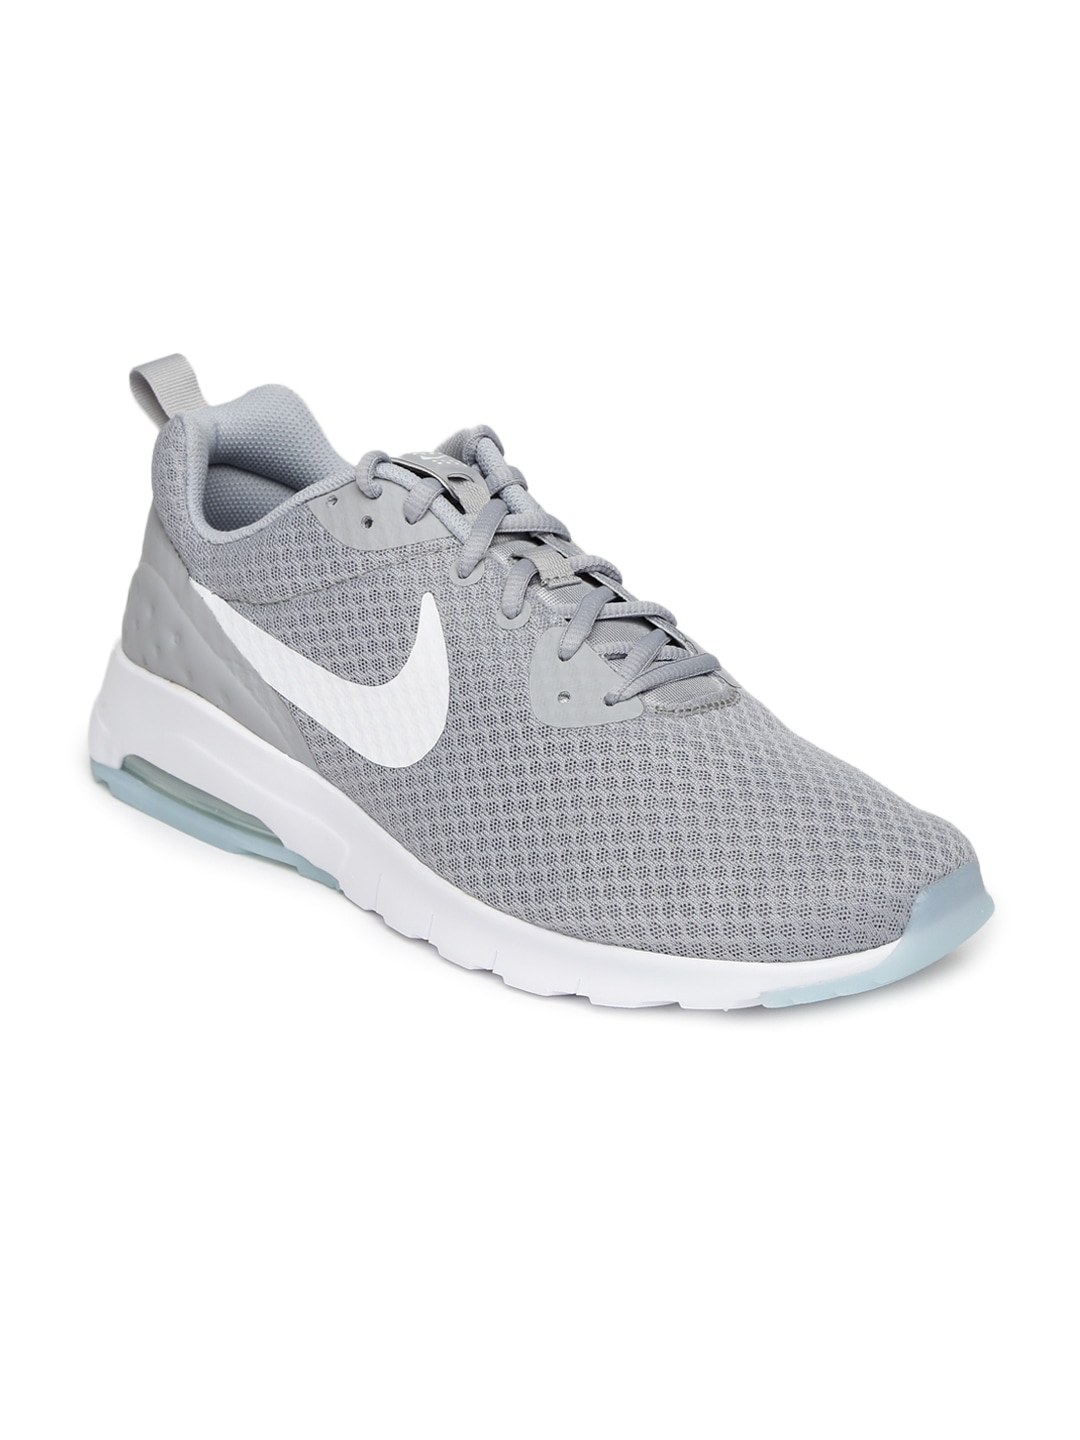 new product 9f7d0 48b00 Nike Air Max - Buy Nike Air Max Shoes, Bags, Sneakers in India